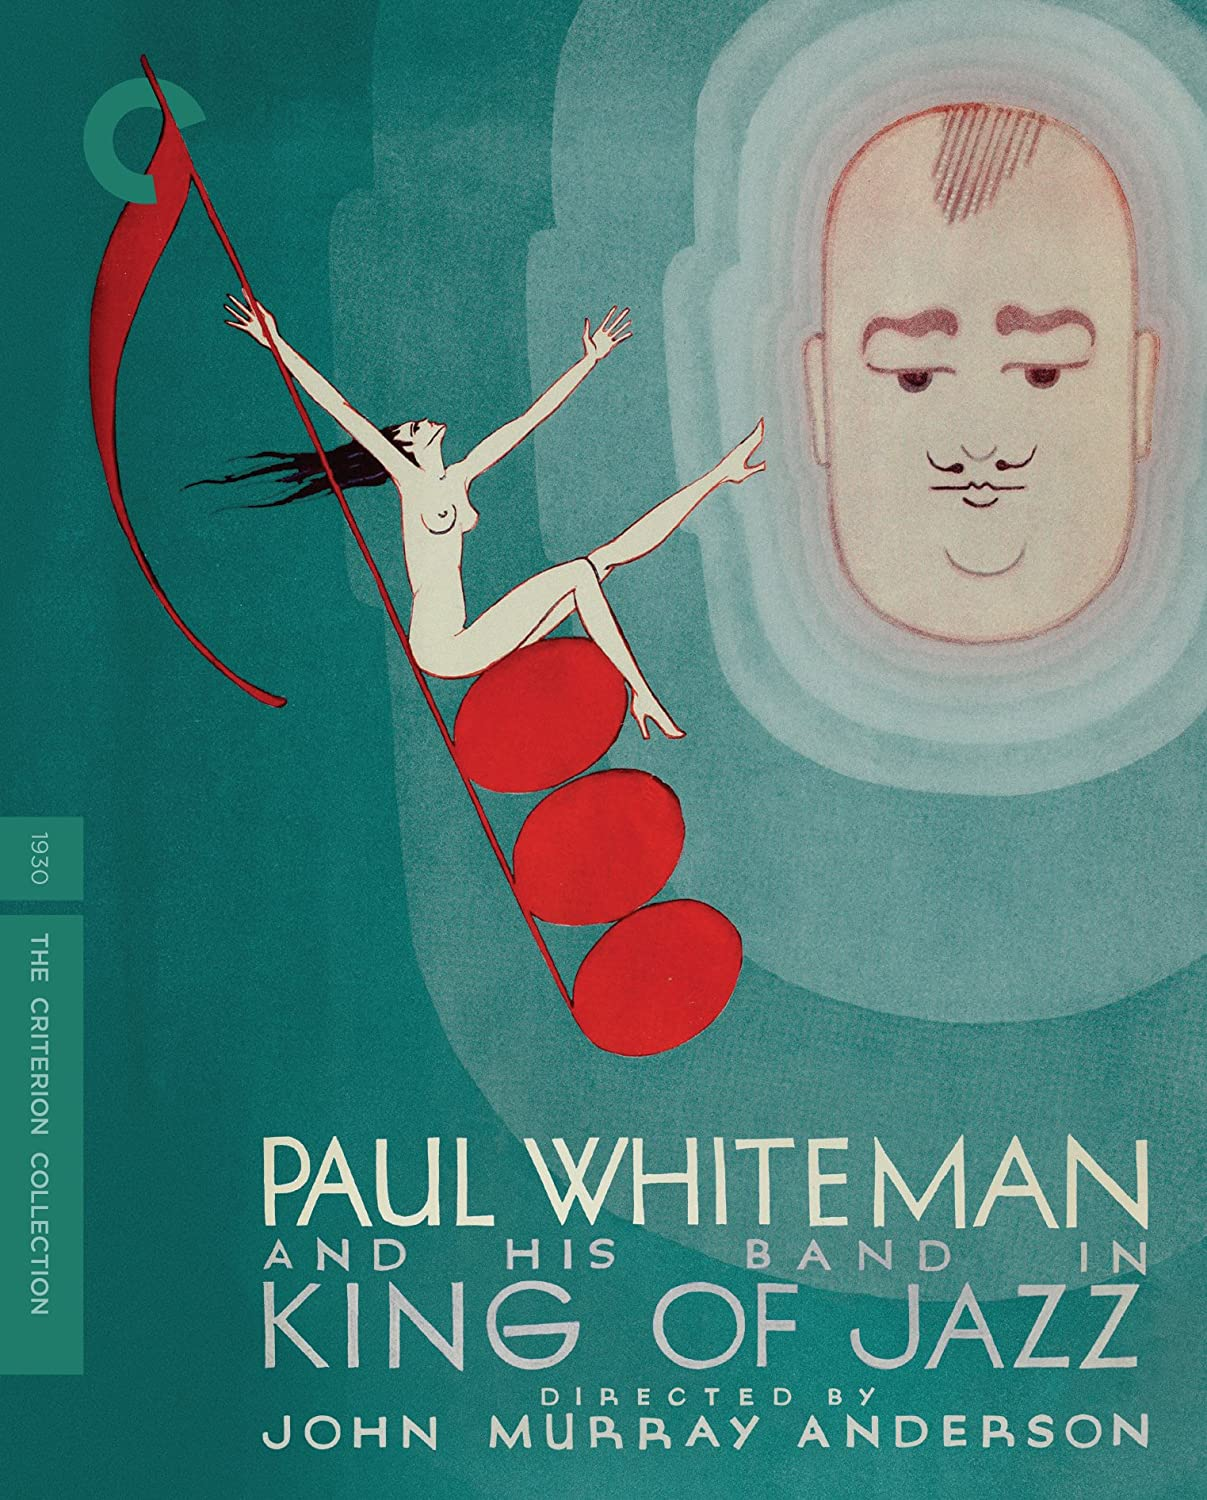 King of Jazz (The Criterion Collection) [Blu-ray]